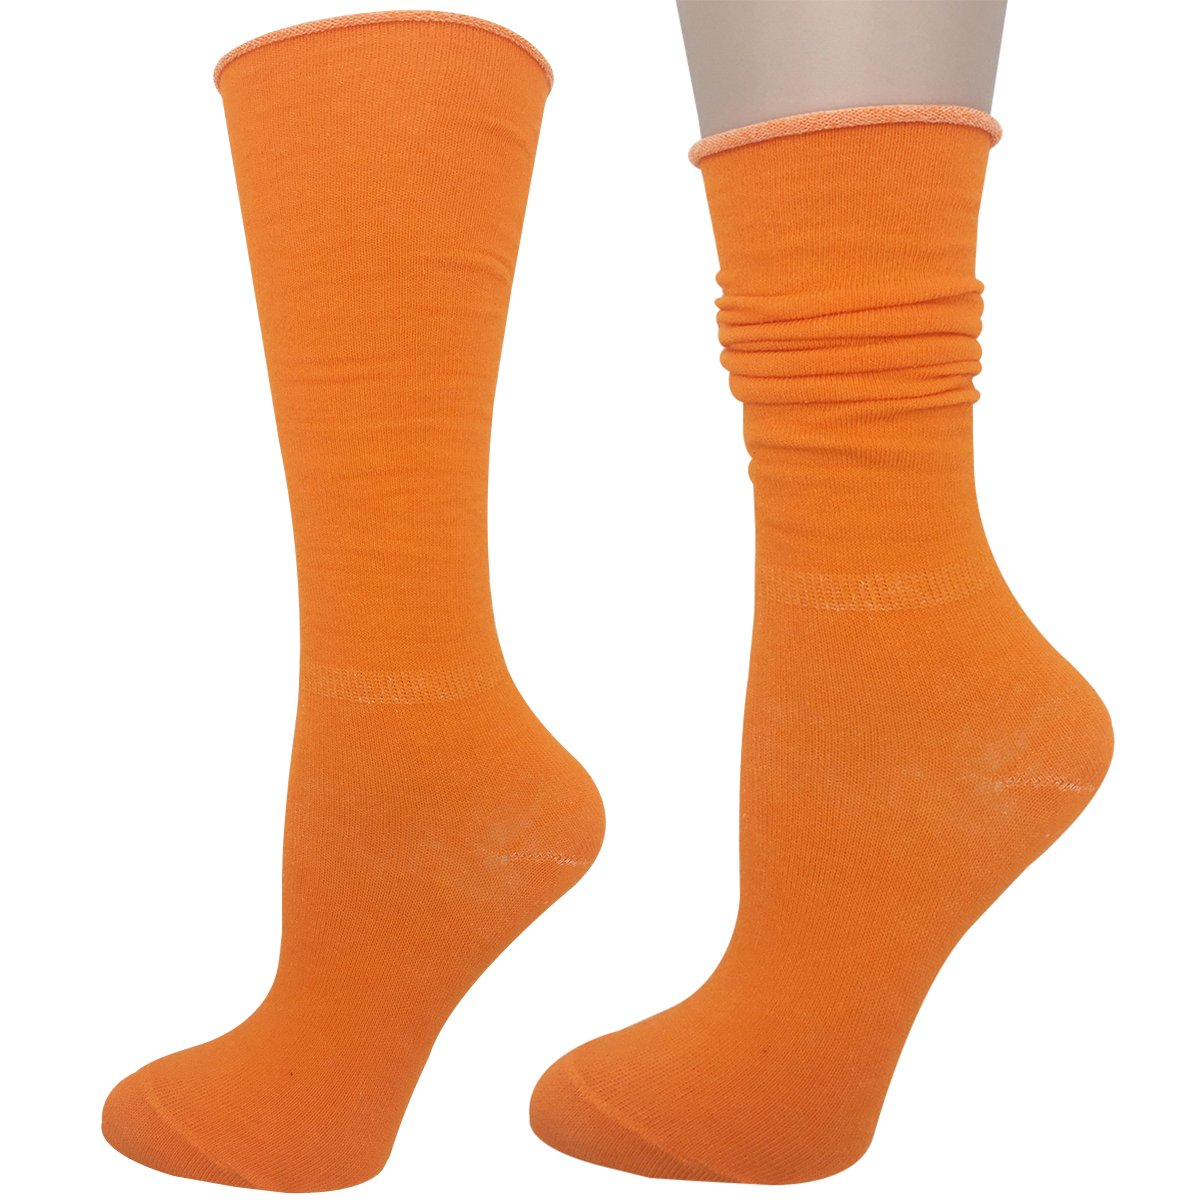 Cityelf Women's Classic Roll Top Cotton Compression Socks (6 pairs, mix) by Cityelf (Image #3)